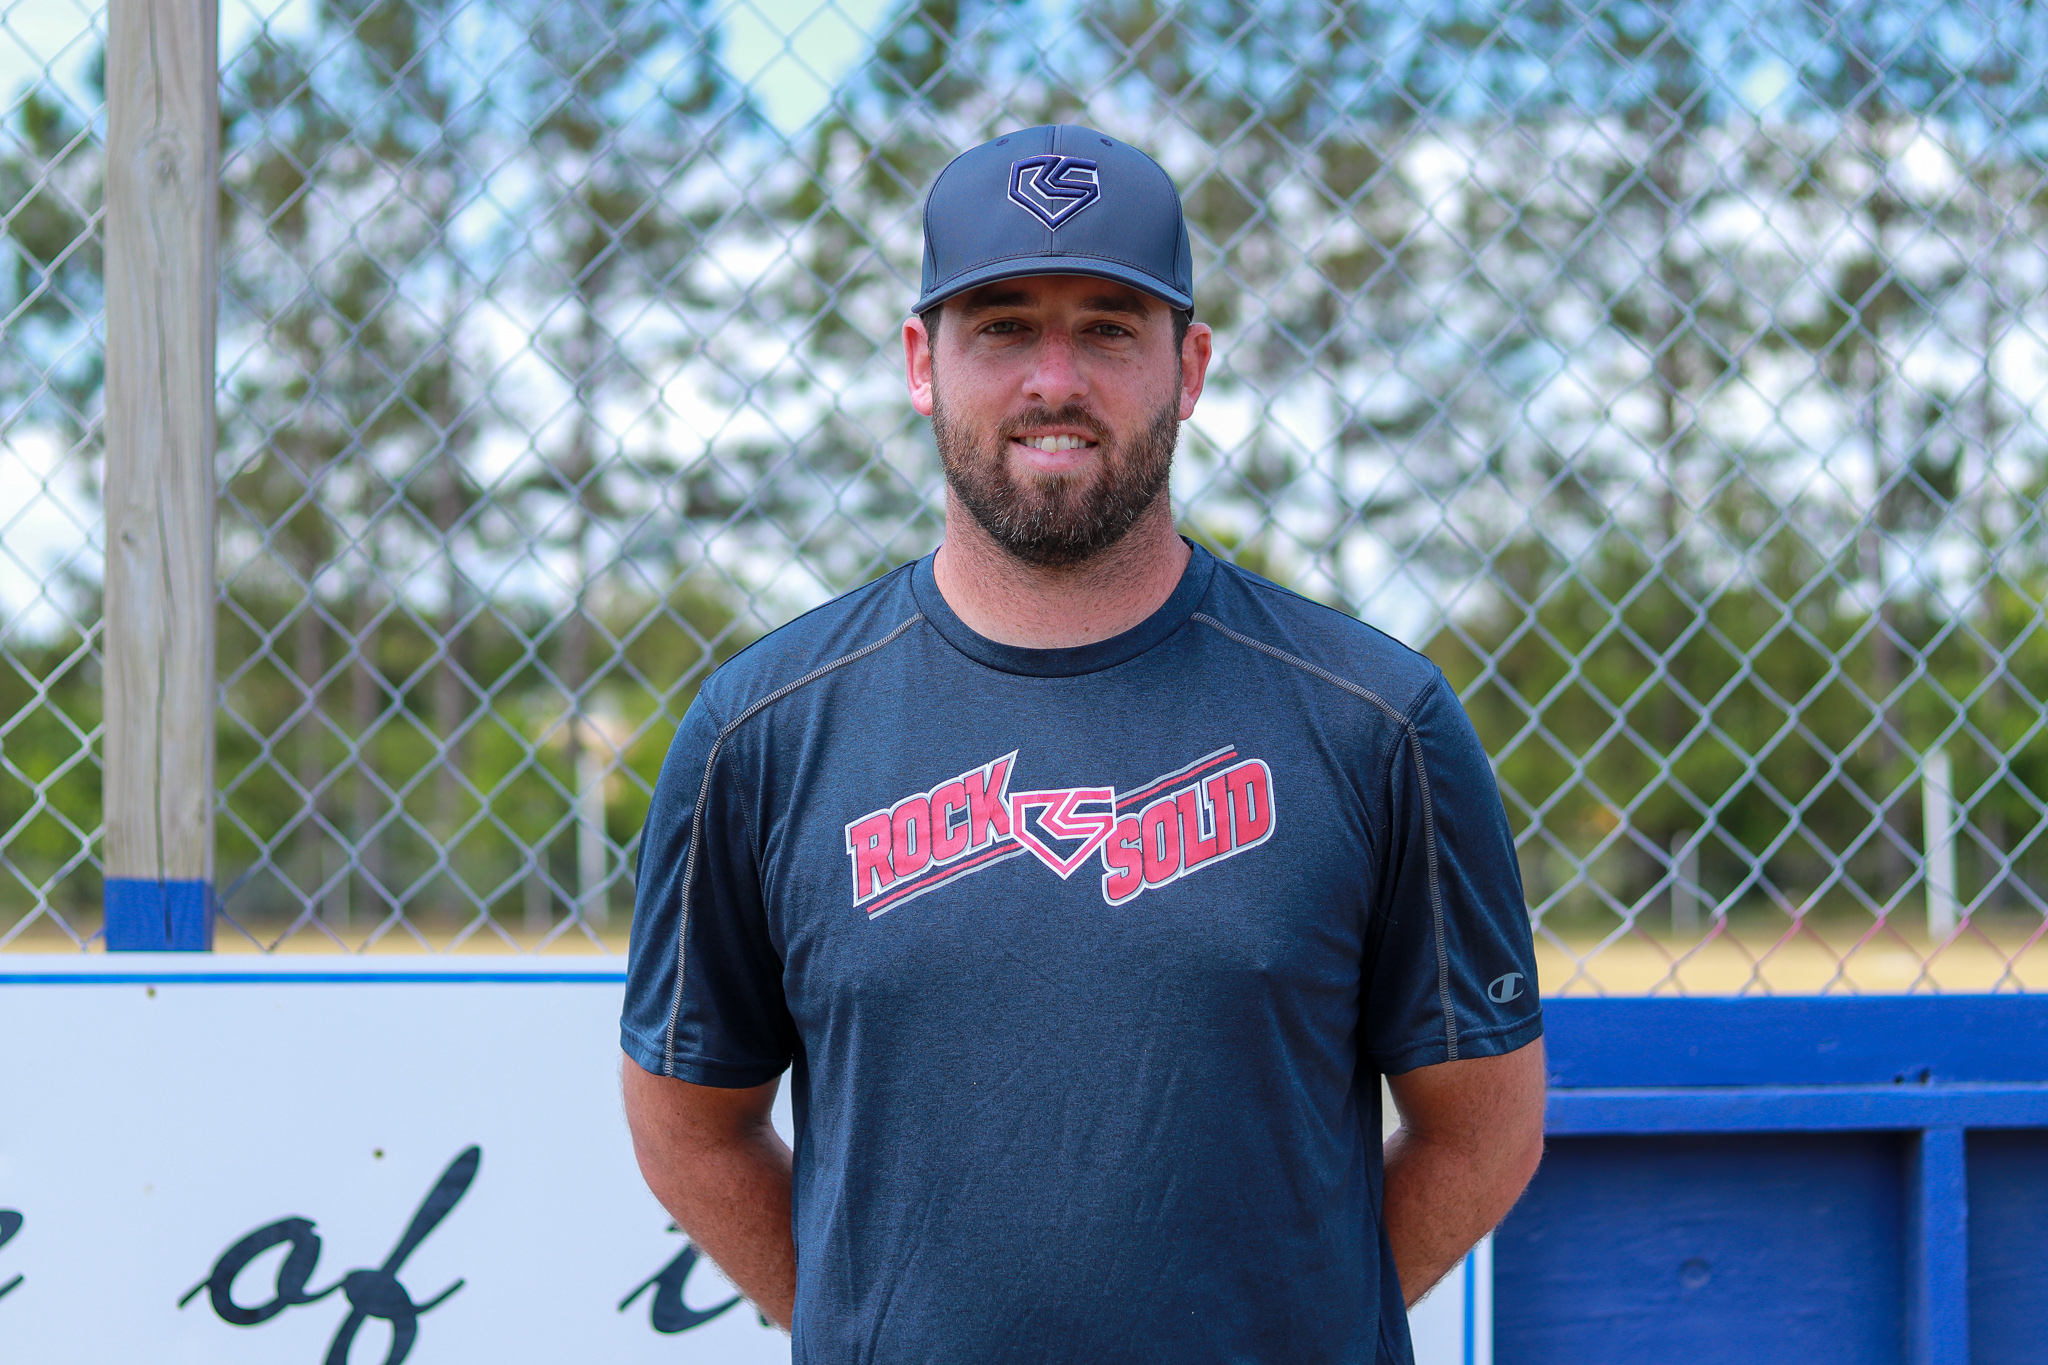 Michael Rooney Youth Baseball Instructor and coach